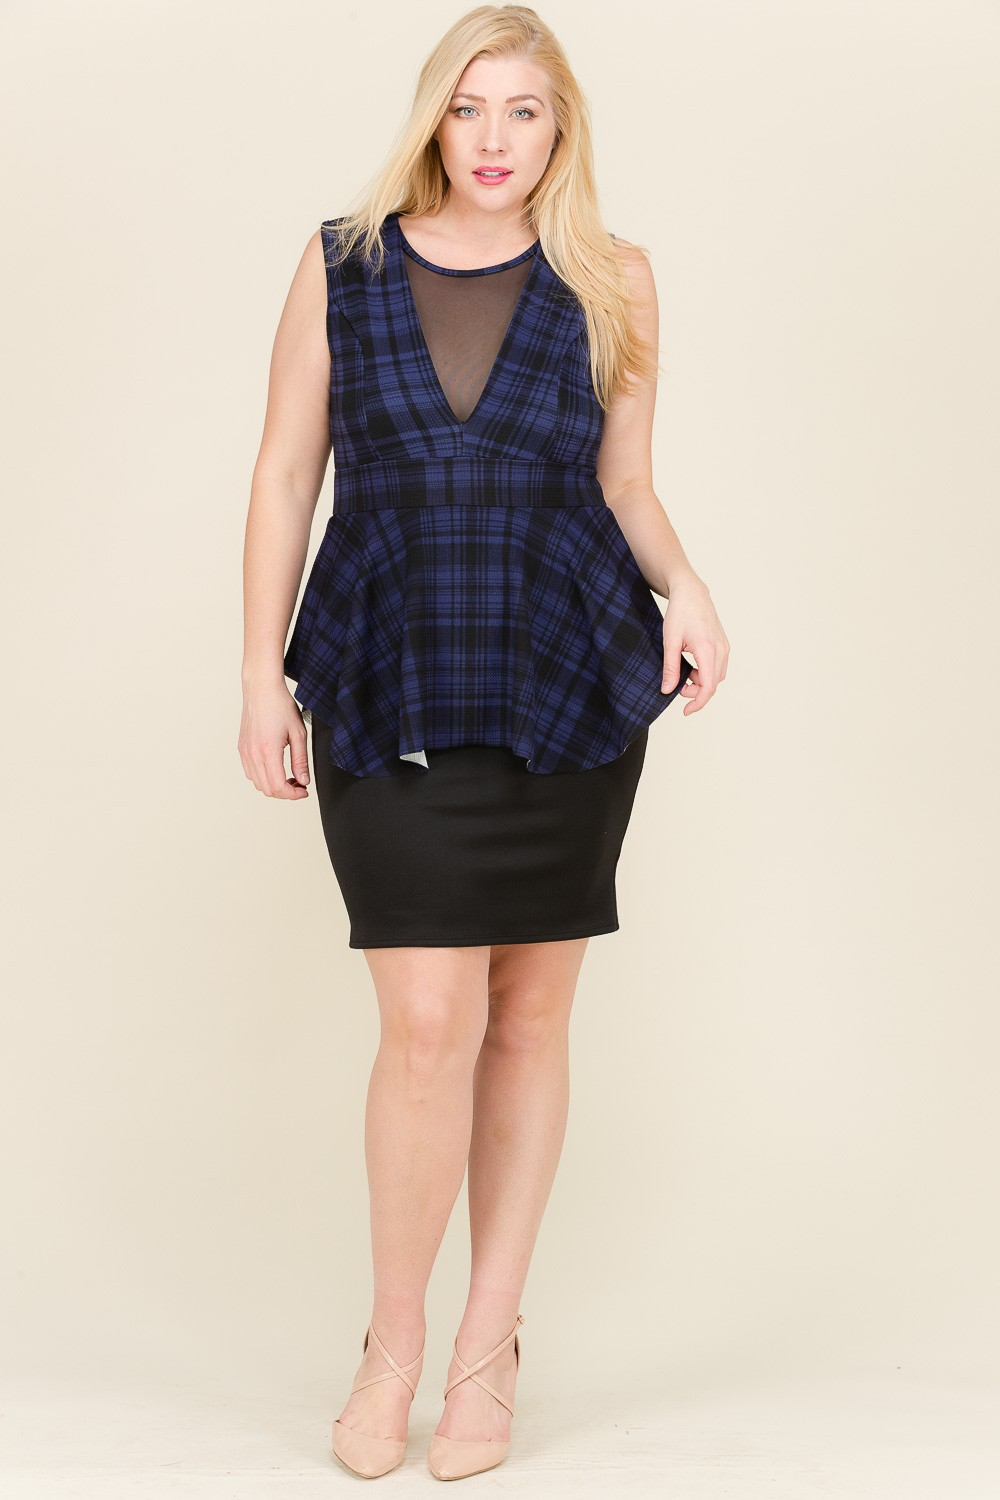 At The Office Dress -Black / Navy - Front